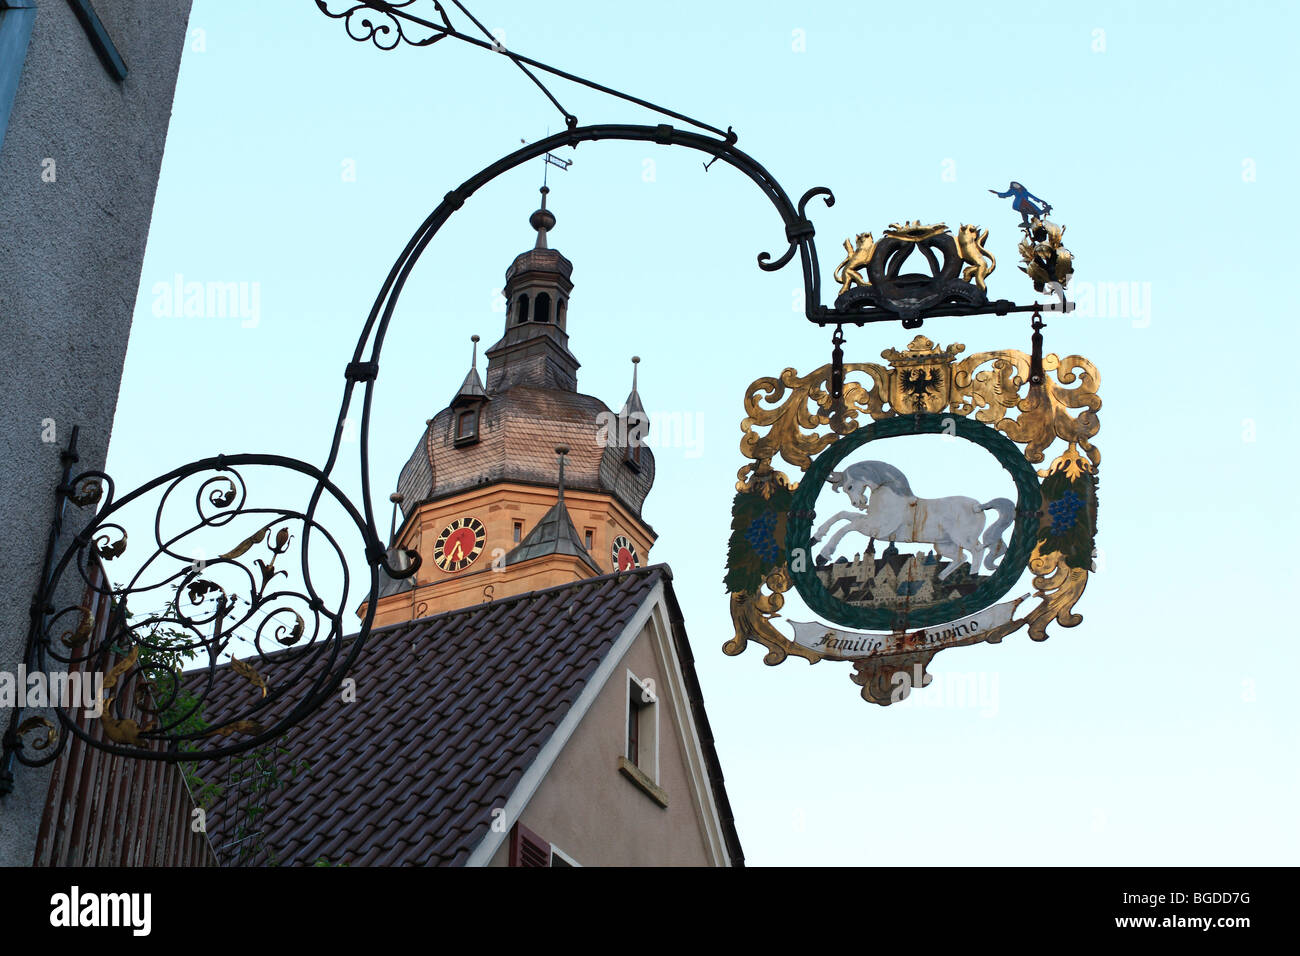 Tavern sign, tower of the church, Neuenstein, Hohenlohe, Baden-Wuerttemberg, Germany, Europe - Stock Image